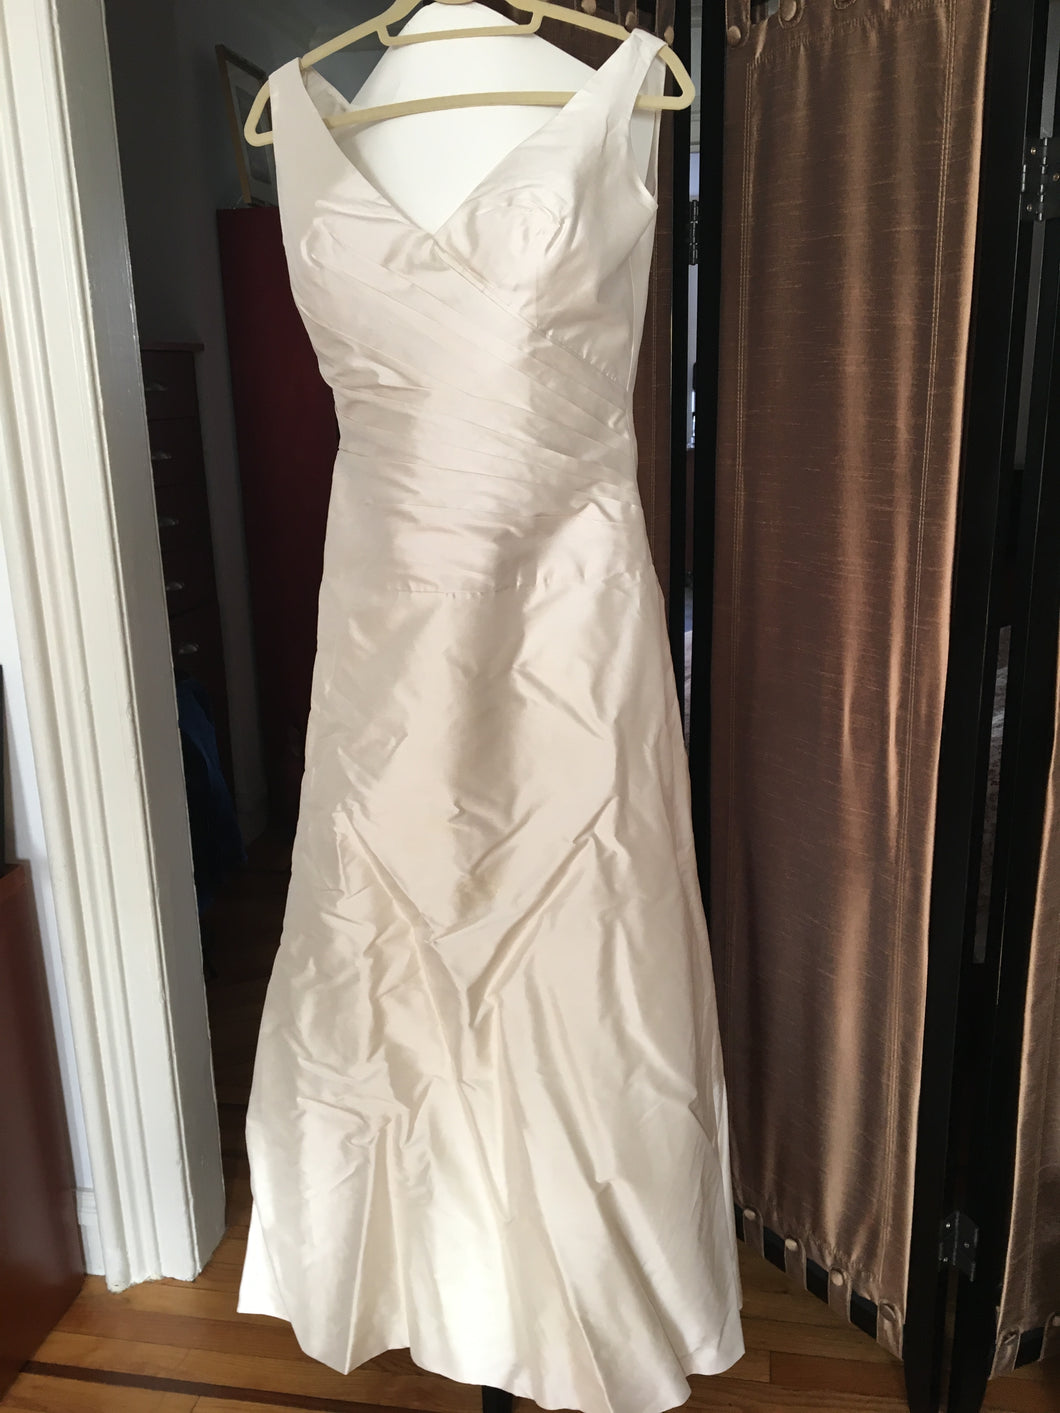 Paloma Blanca 'Dupioni' size 10 used wedding dress front view on hanger